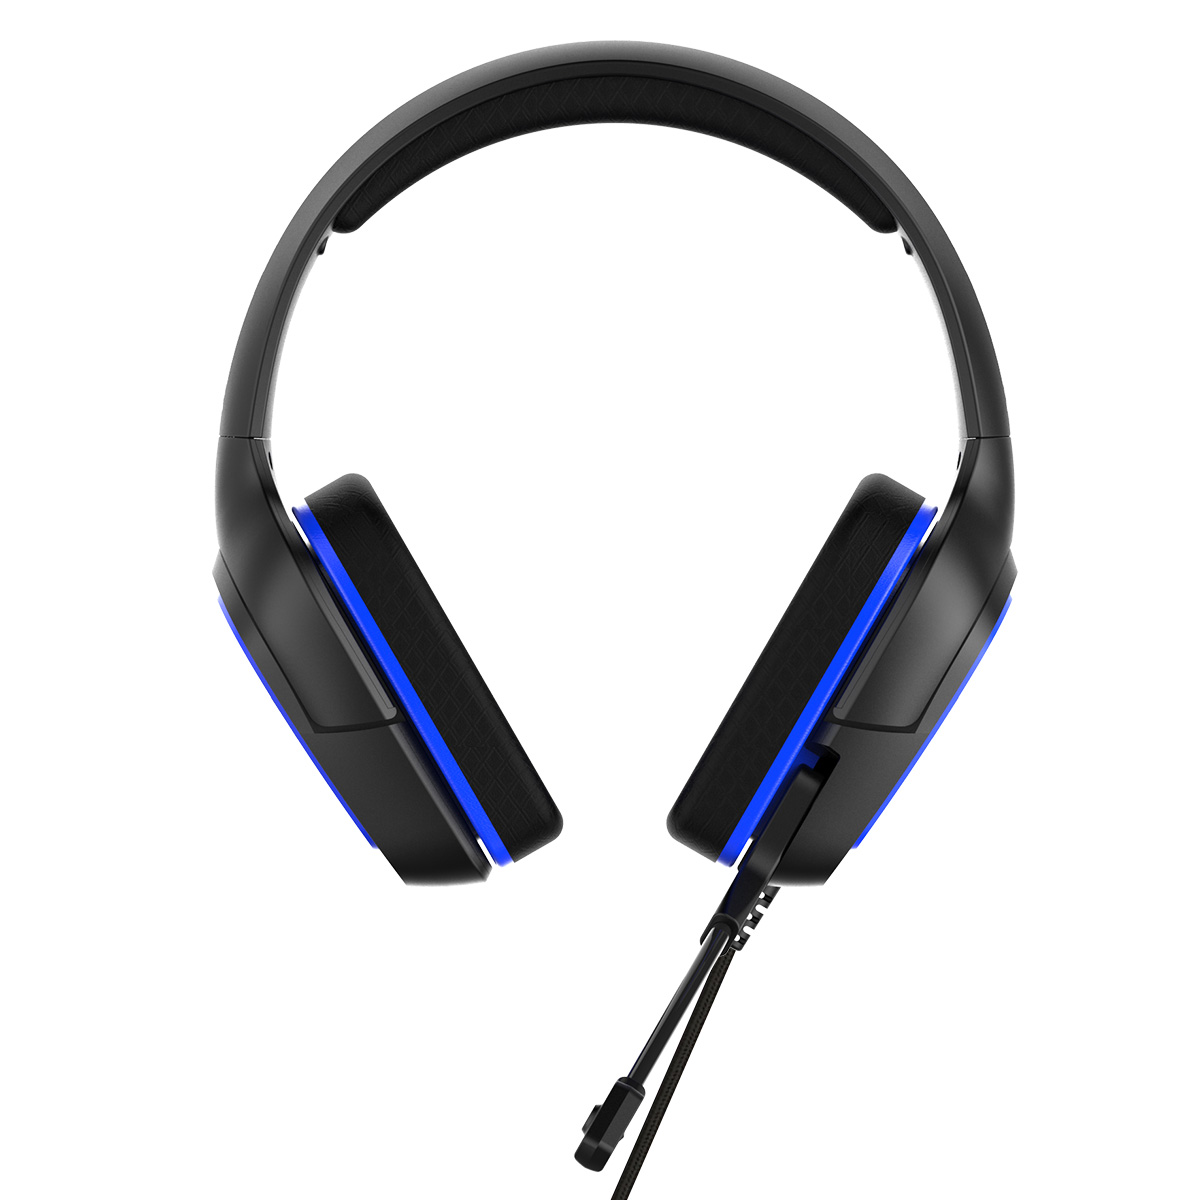 Ipega-R006B headset with headset